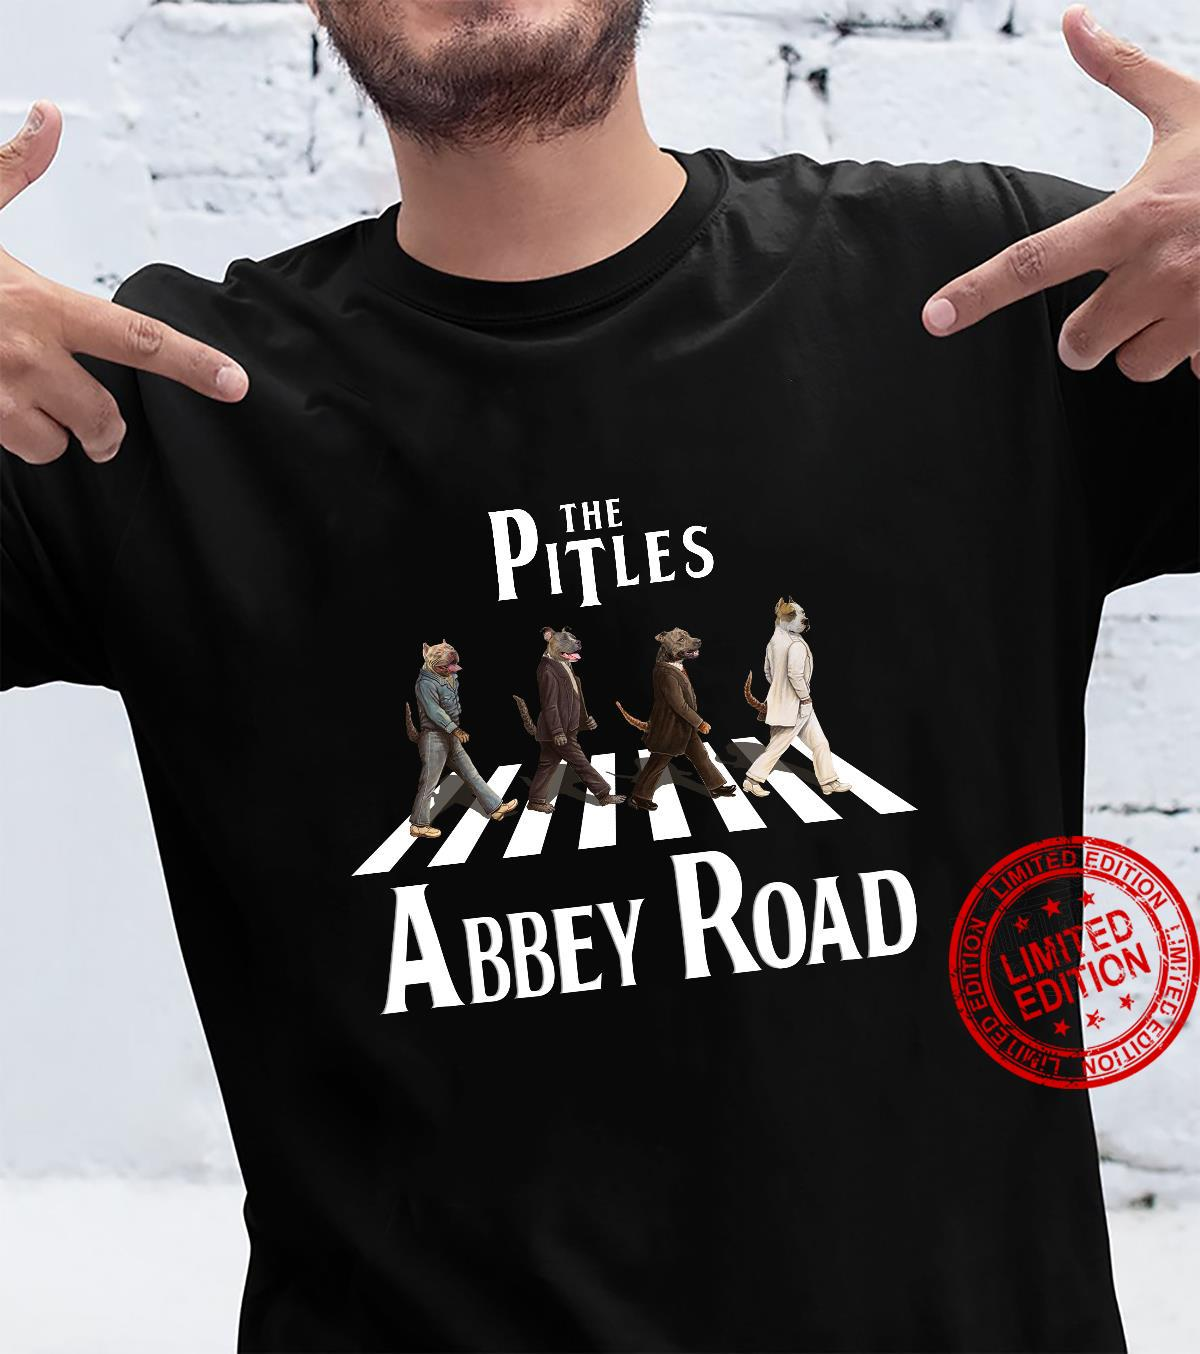 The Pitles Abbey Road shirt